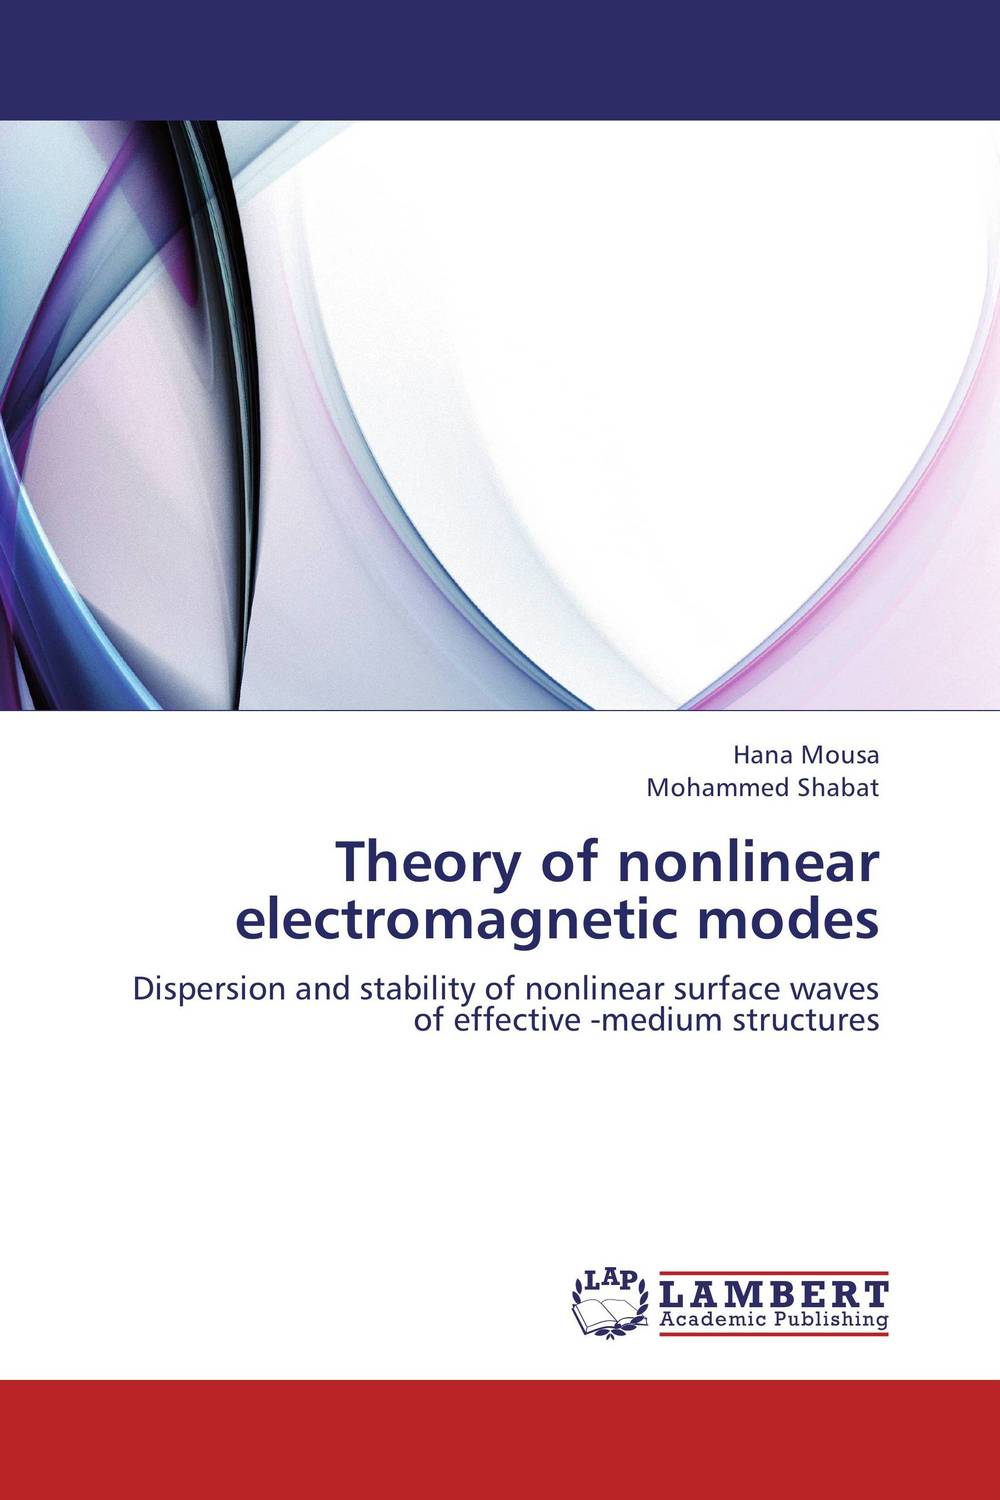 Theory of nonlinear electromagnetic modes